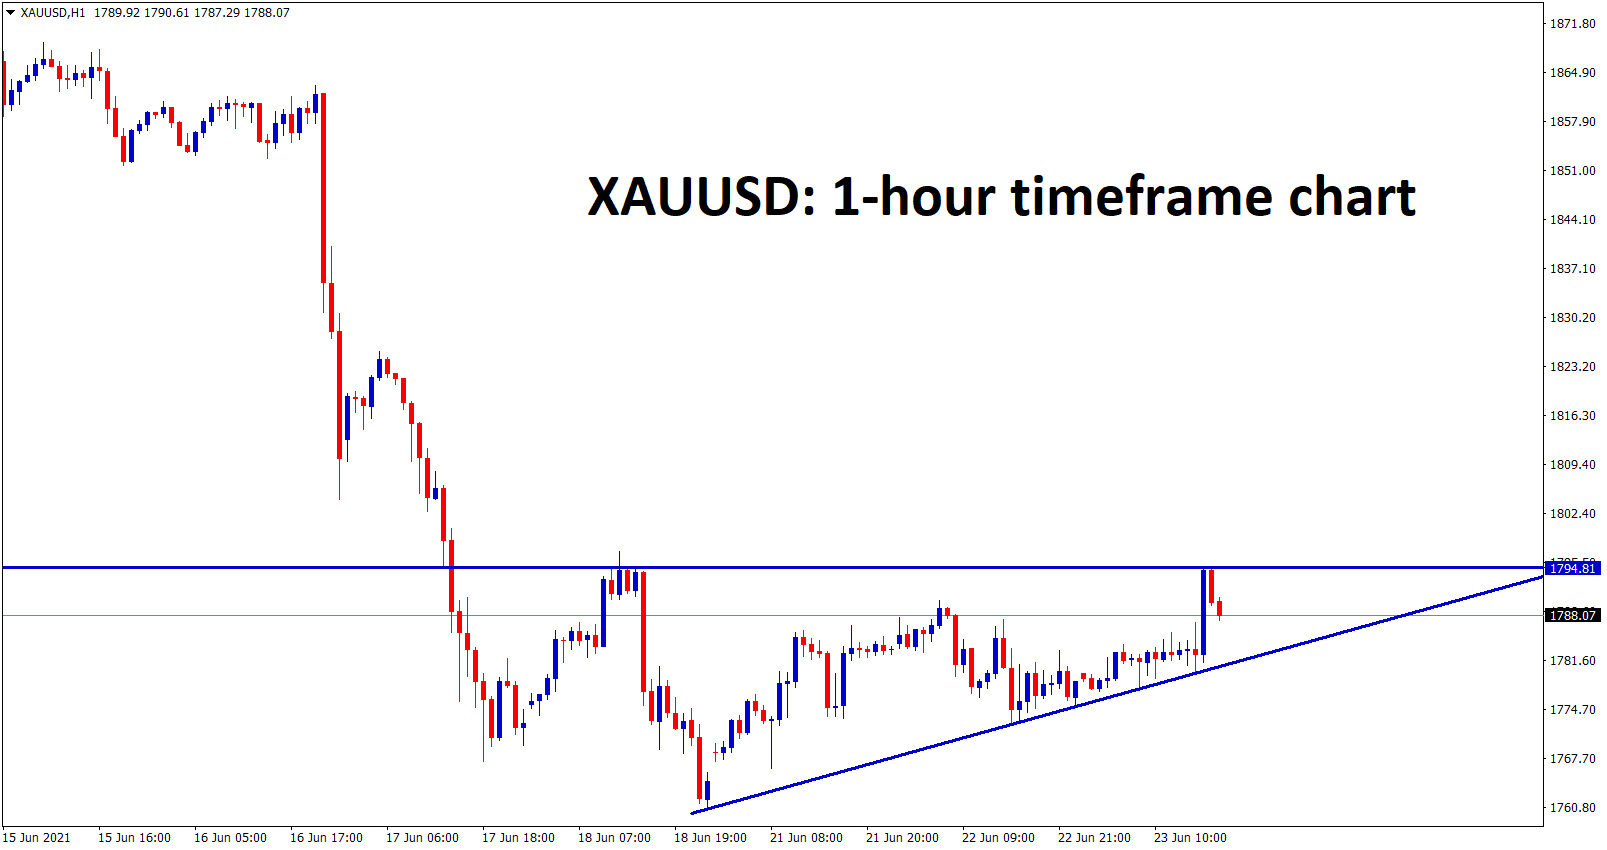 Gold has formed an Ascending Triangle pattern